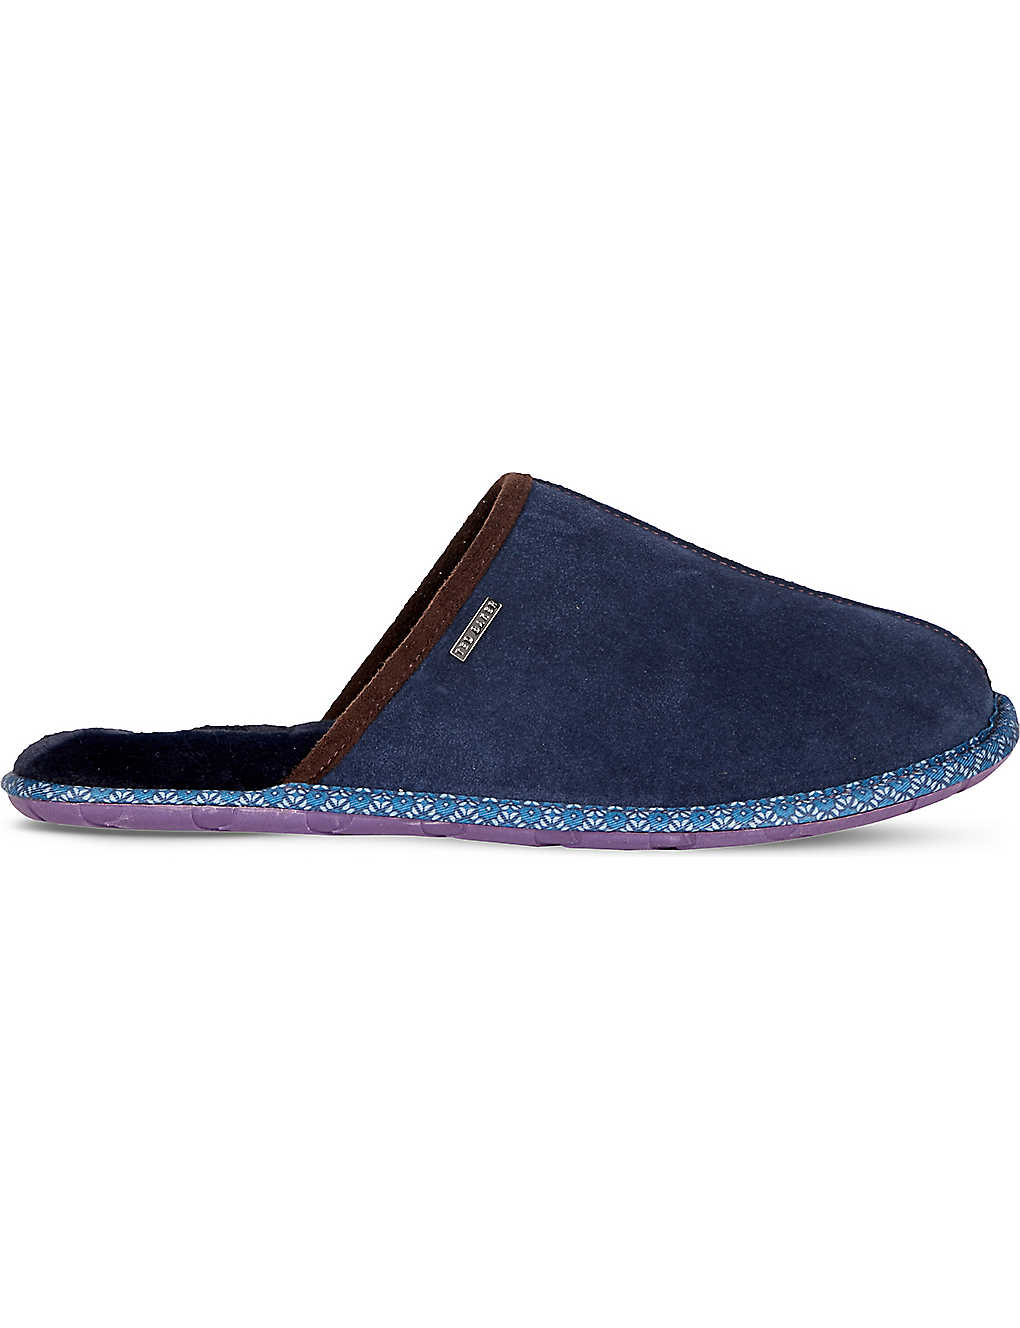 31123f76f TED BAKER - Mule suede slippers